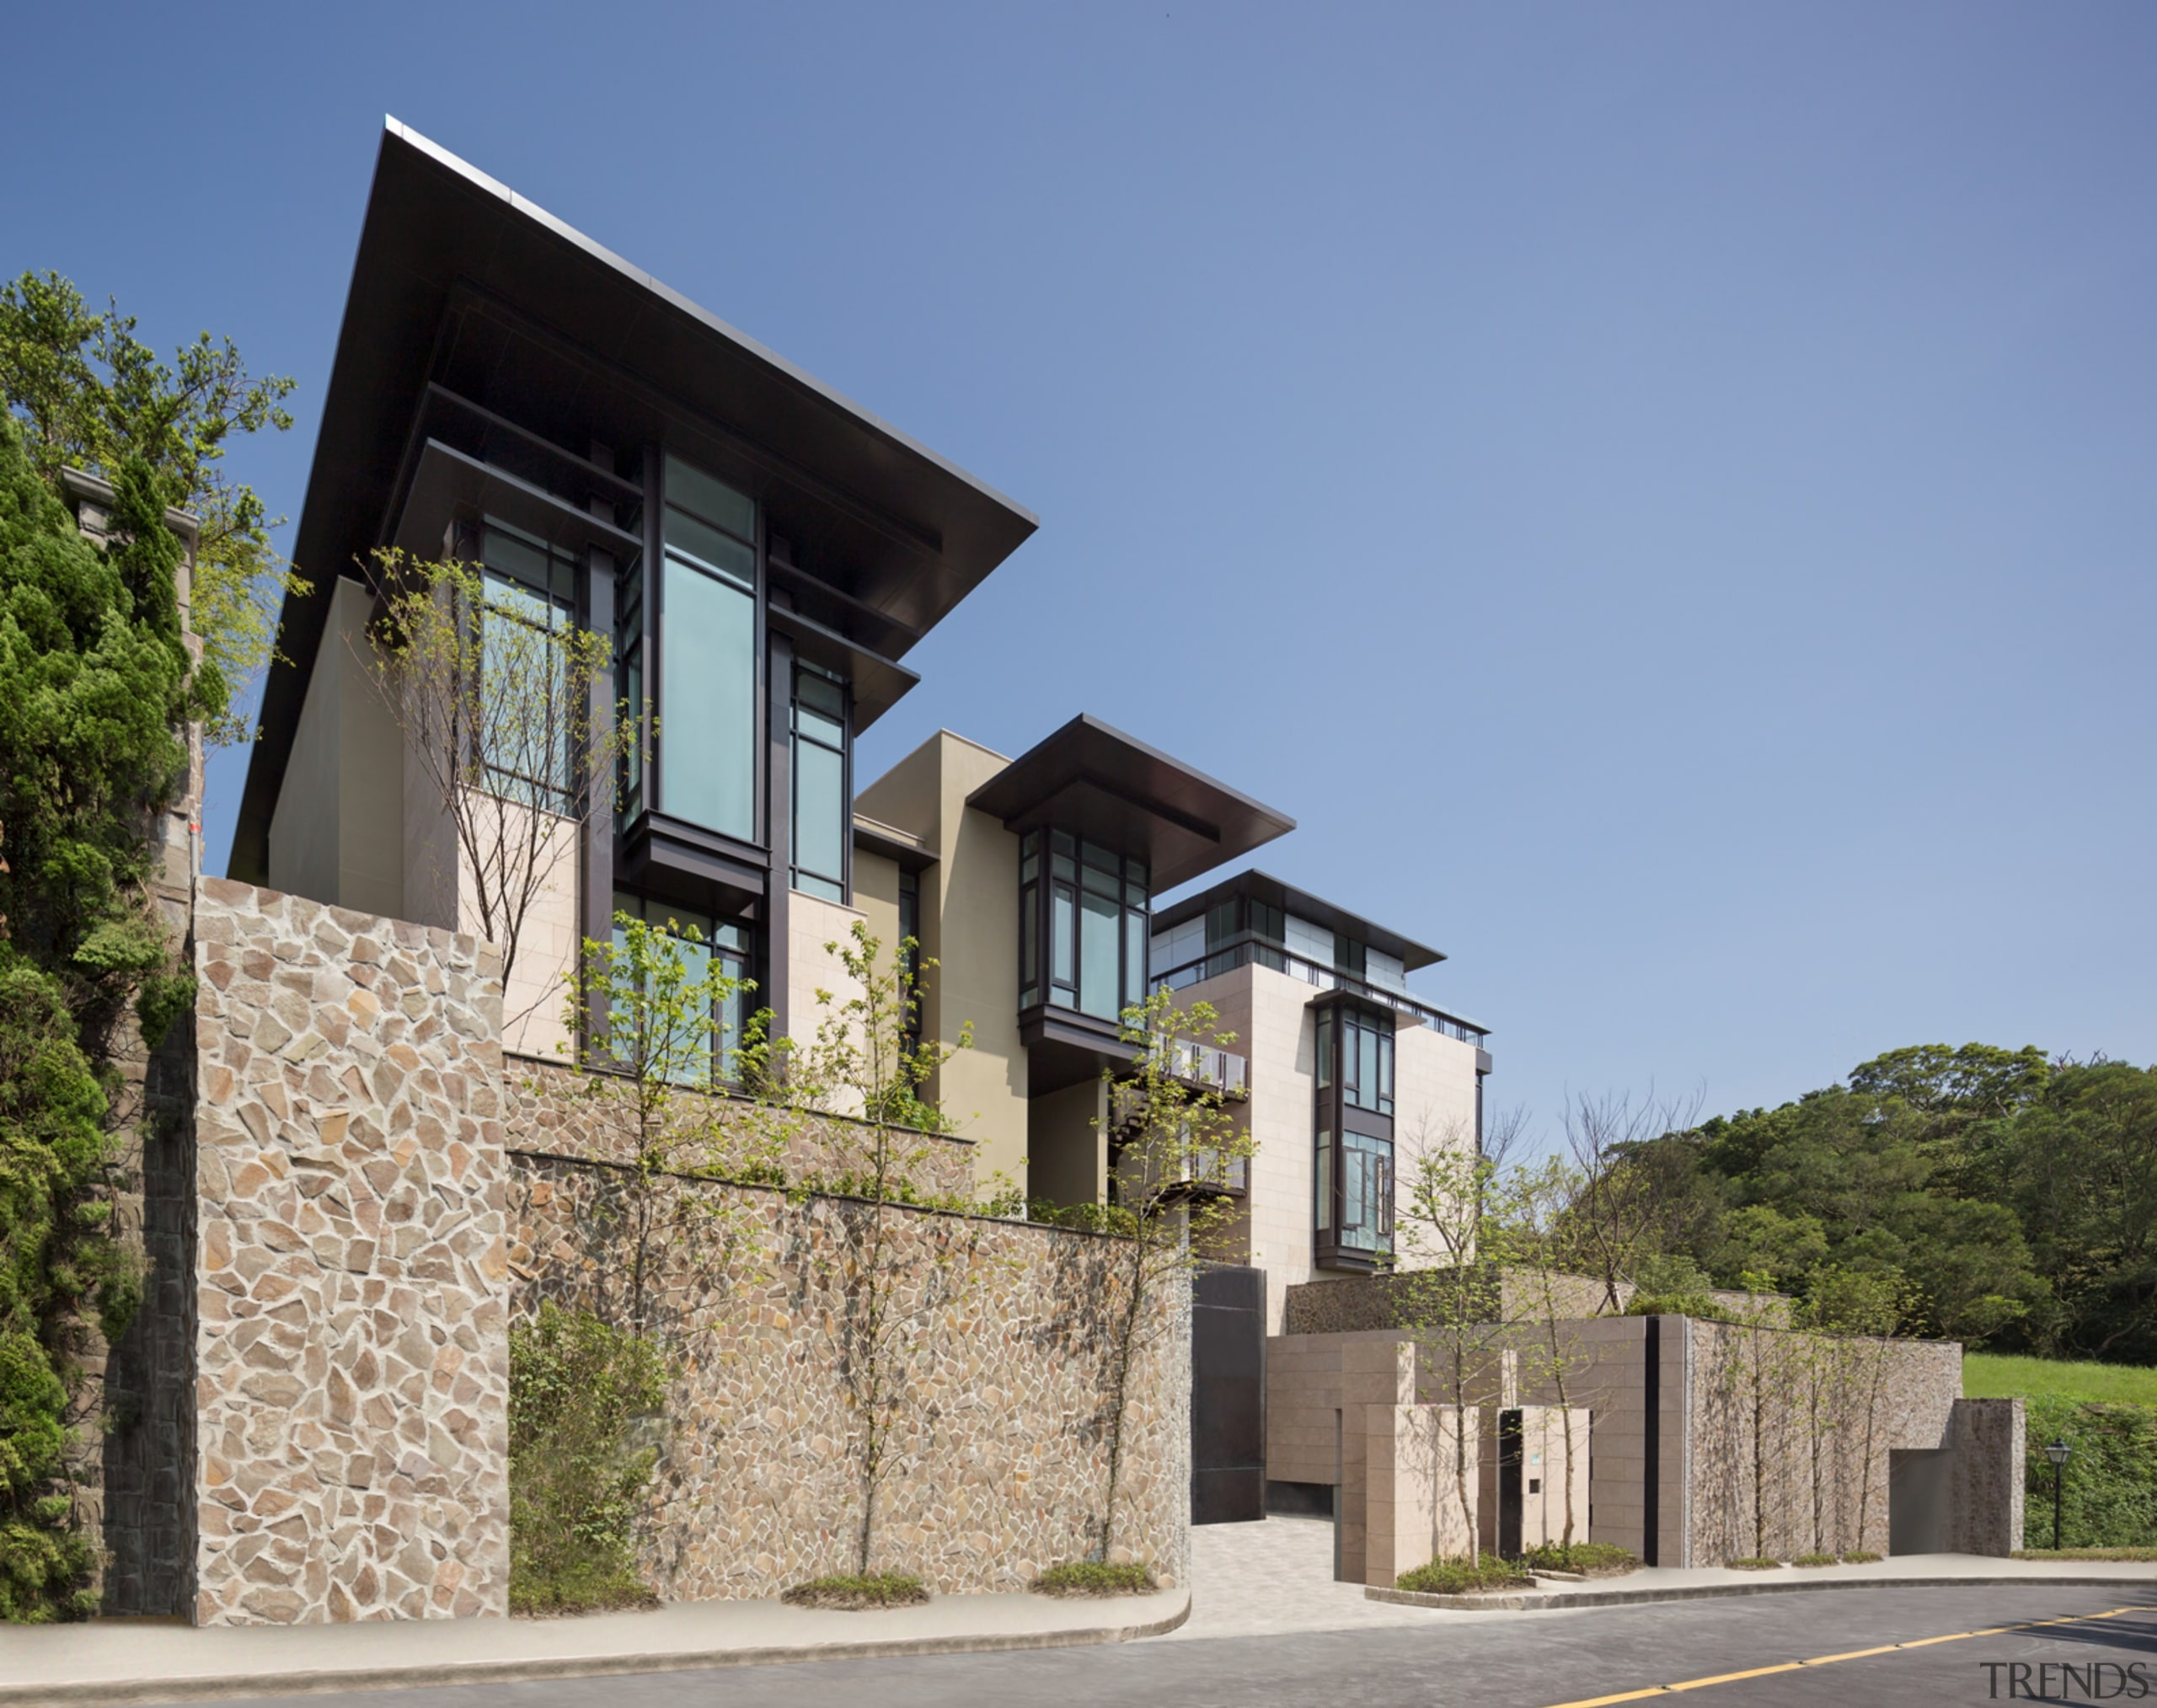 Taiwan Villa - Jim Olson Houses - architecture architecture, building, cottage, elevation, estate, facade, home, house, neighbourhood, property, real estate, residential area, villa, teal